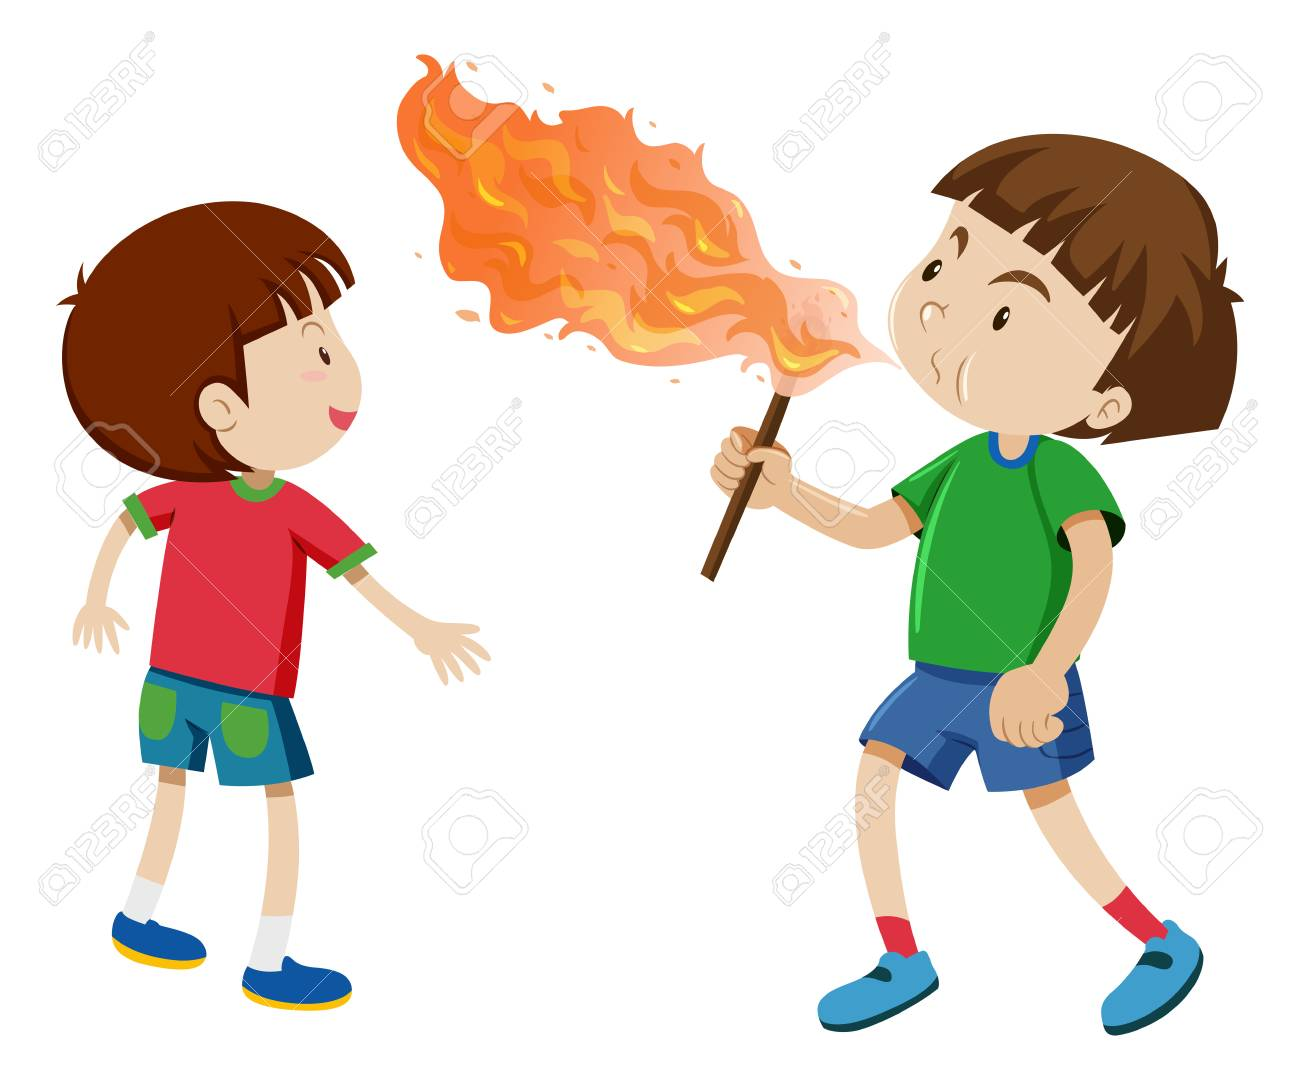 Boys Playing With Fire Illustration